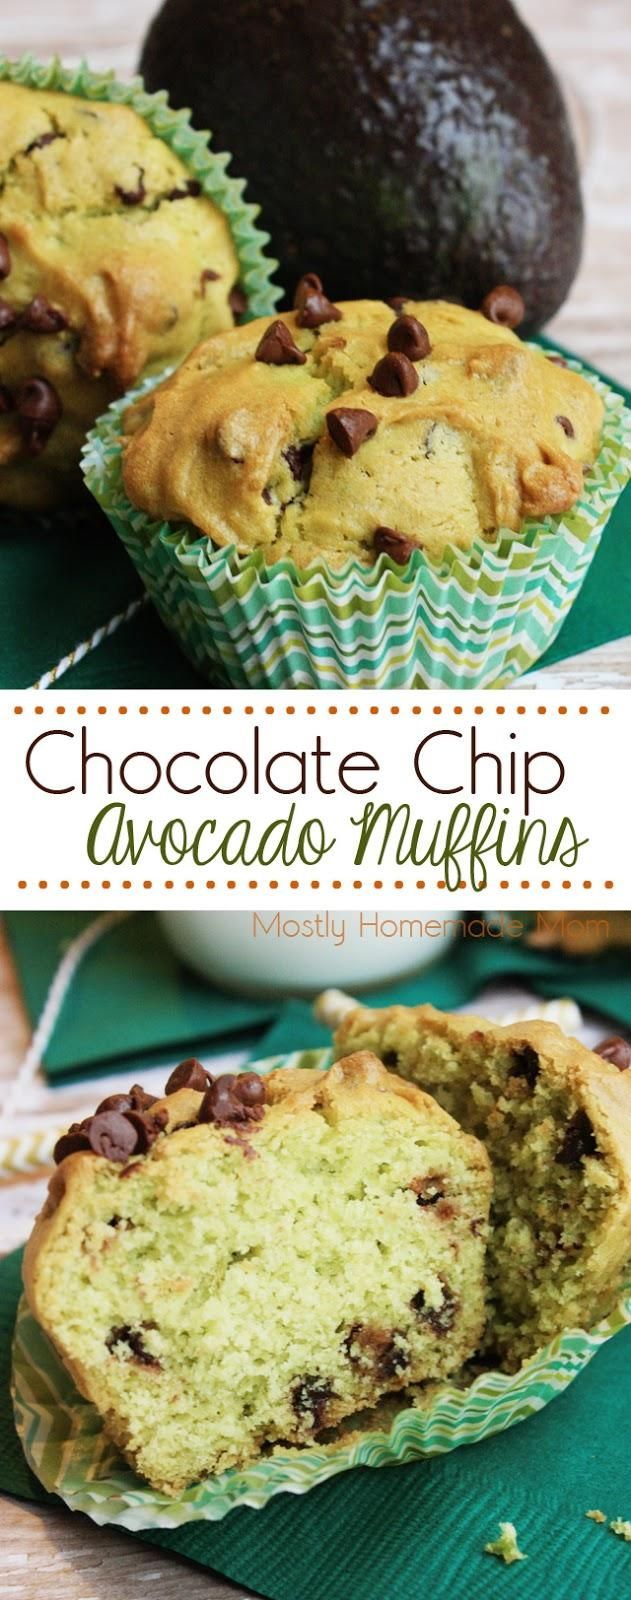 Chocolate Chip Avocado Muffins - These sweet muffins are the perfect way to use up ripe avocado in your kitchen! The miniature chocolate chips give these muffins a special touch for breakfast as well. AlwaysInSeason AD